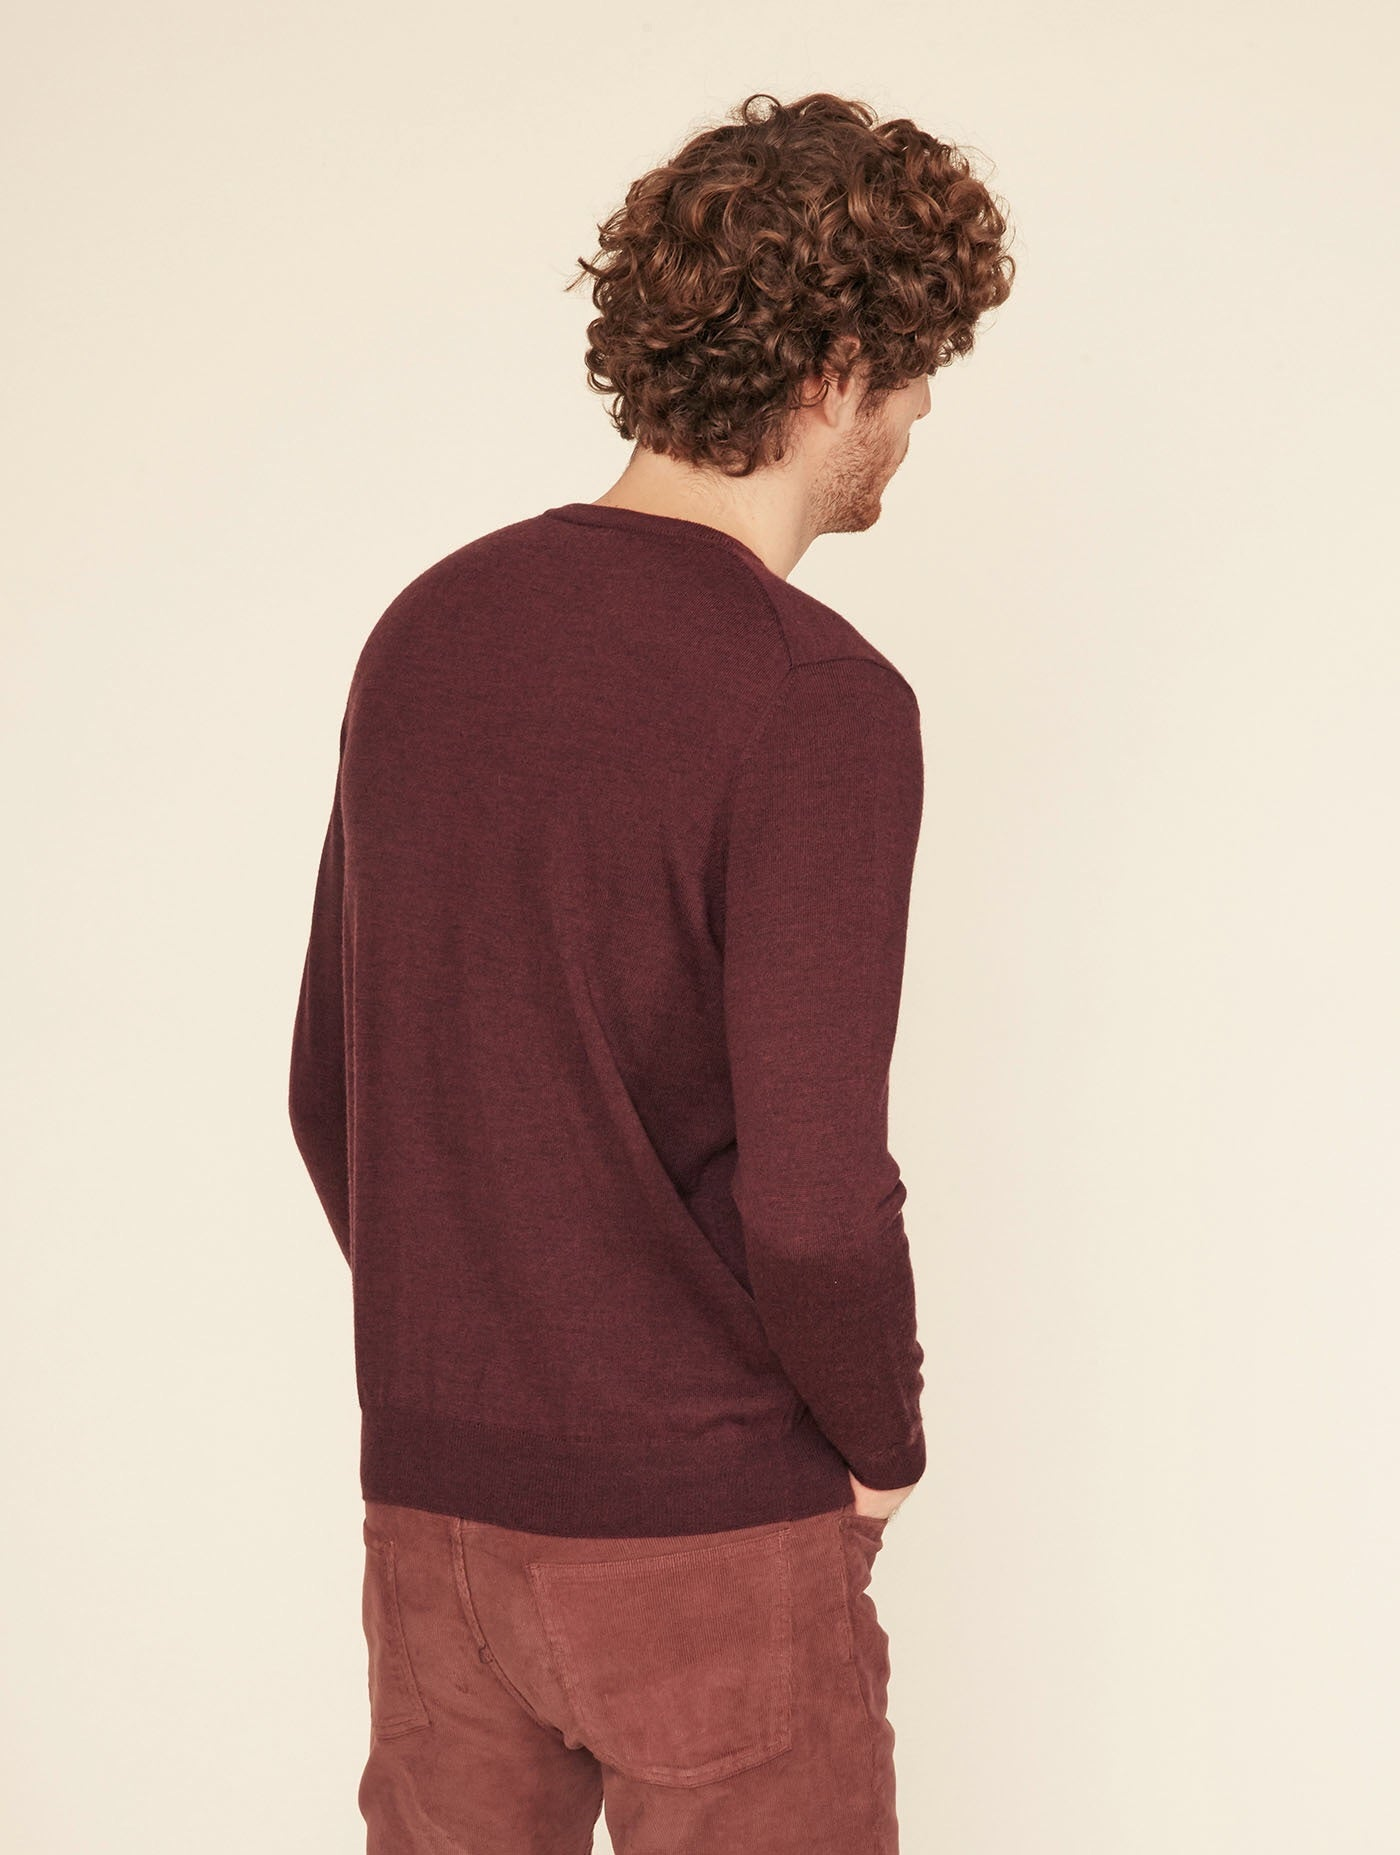 Aigle Sepia Merino Round Sweater - LAST ONE REDUCED!!